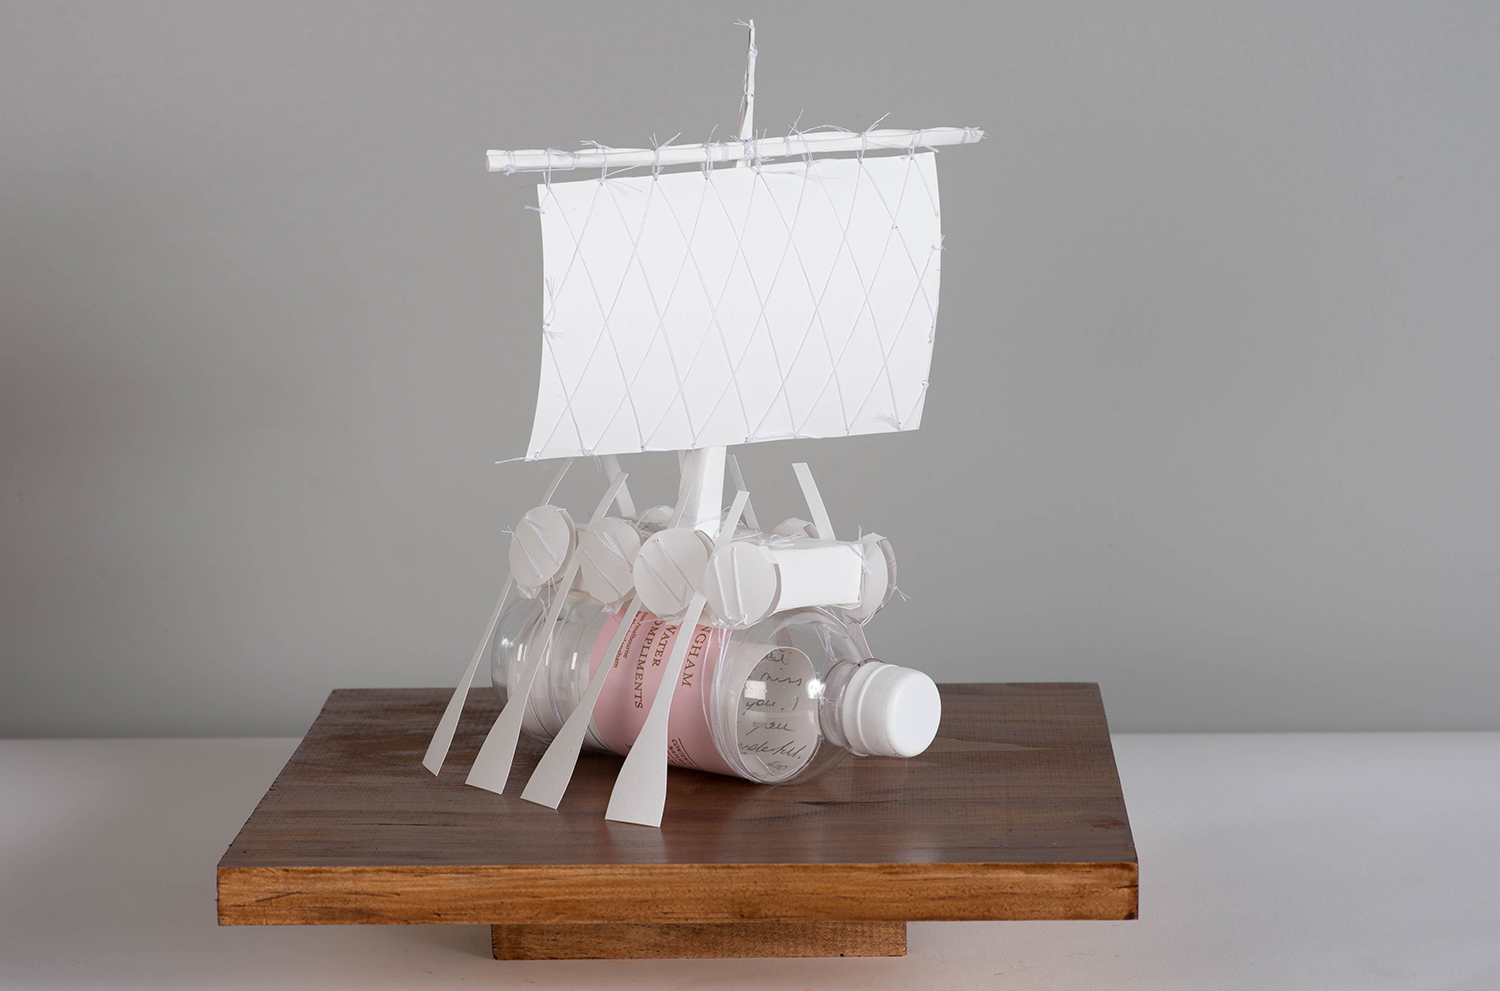 Azimuth (Langham) from Messages for my Brother, 2017, paper, thread, Langham bottle, 30 x 30 x 20 cm